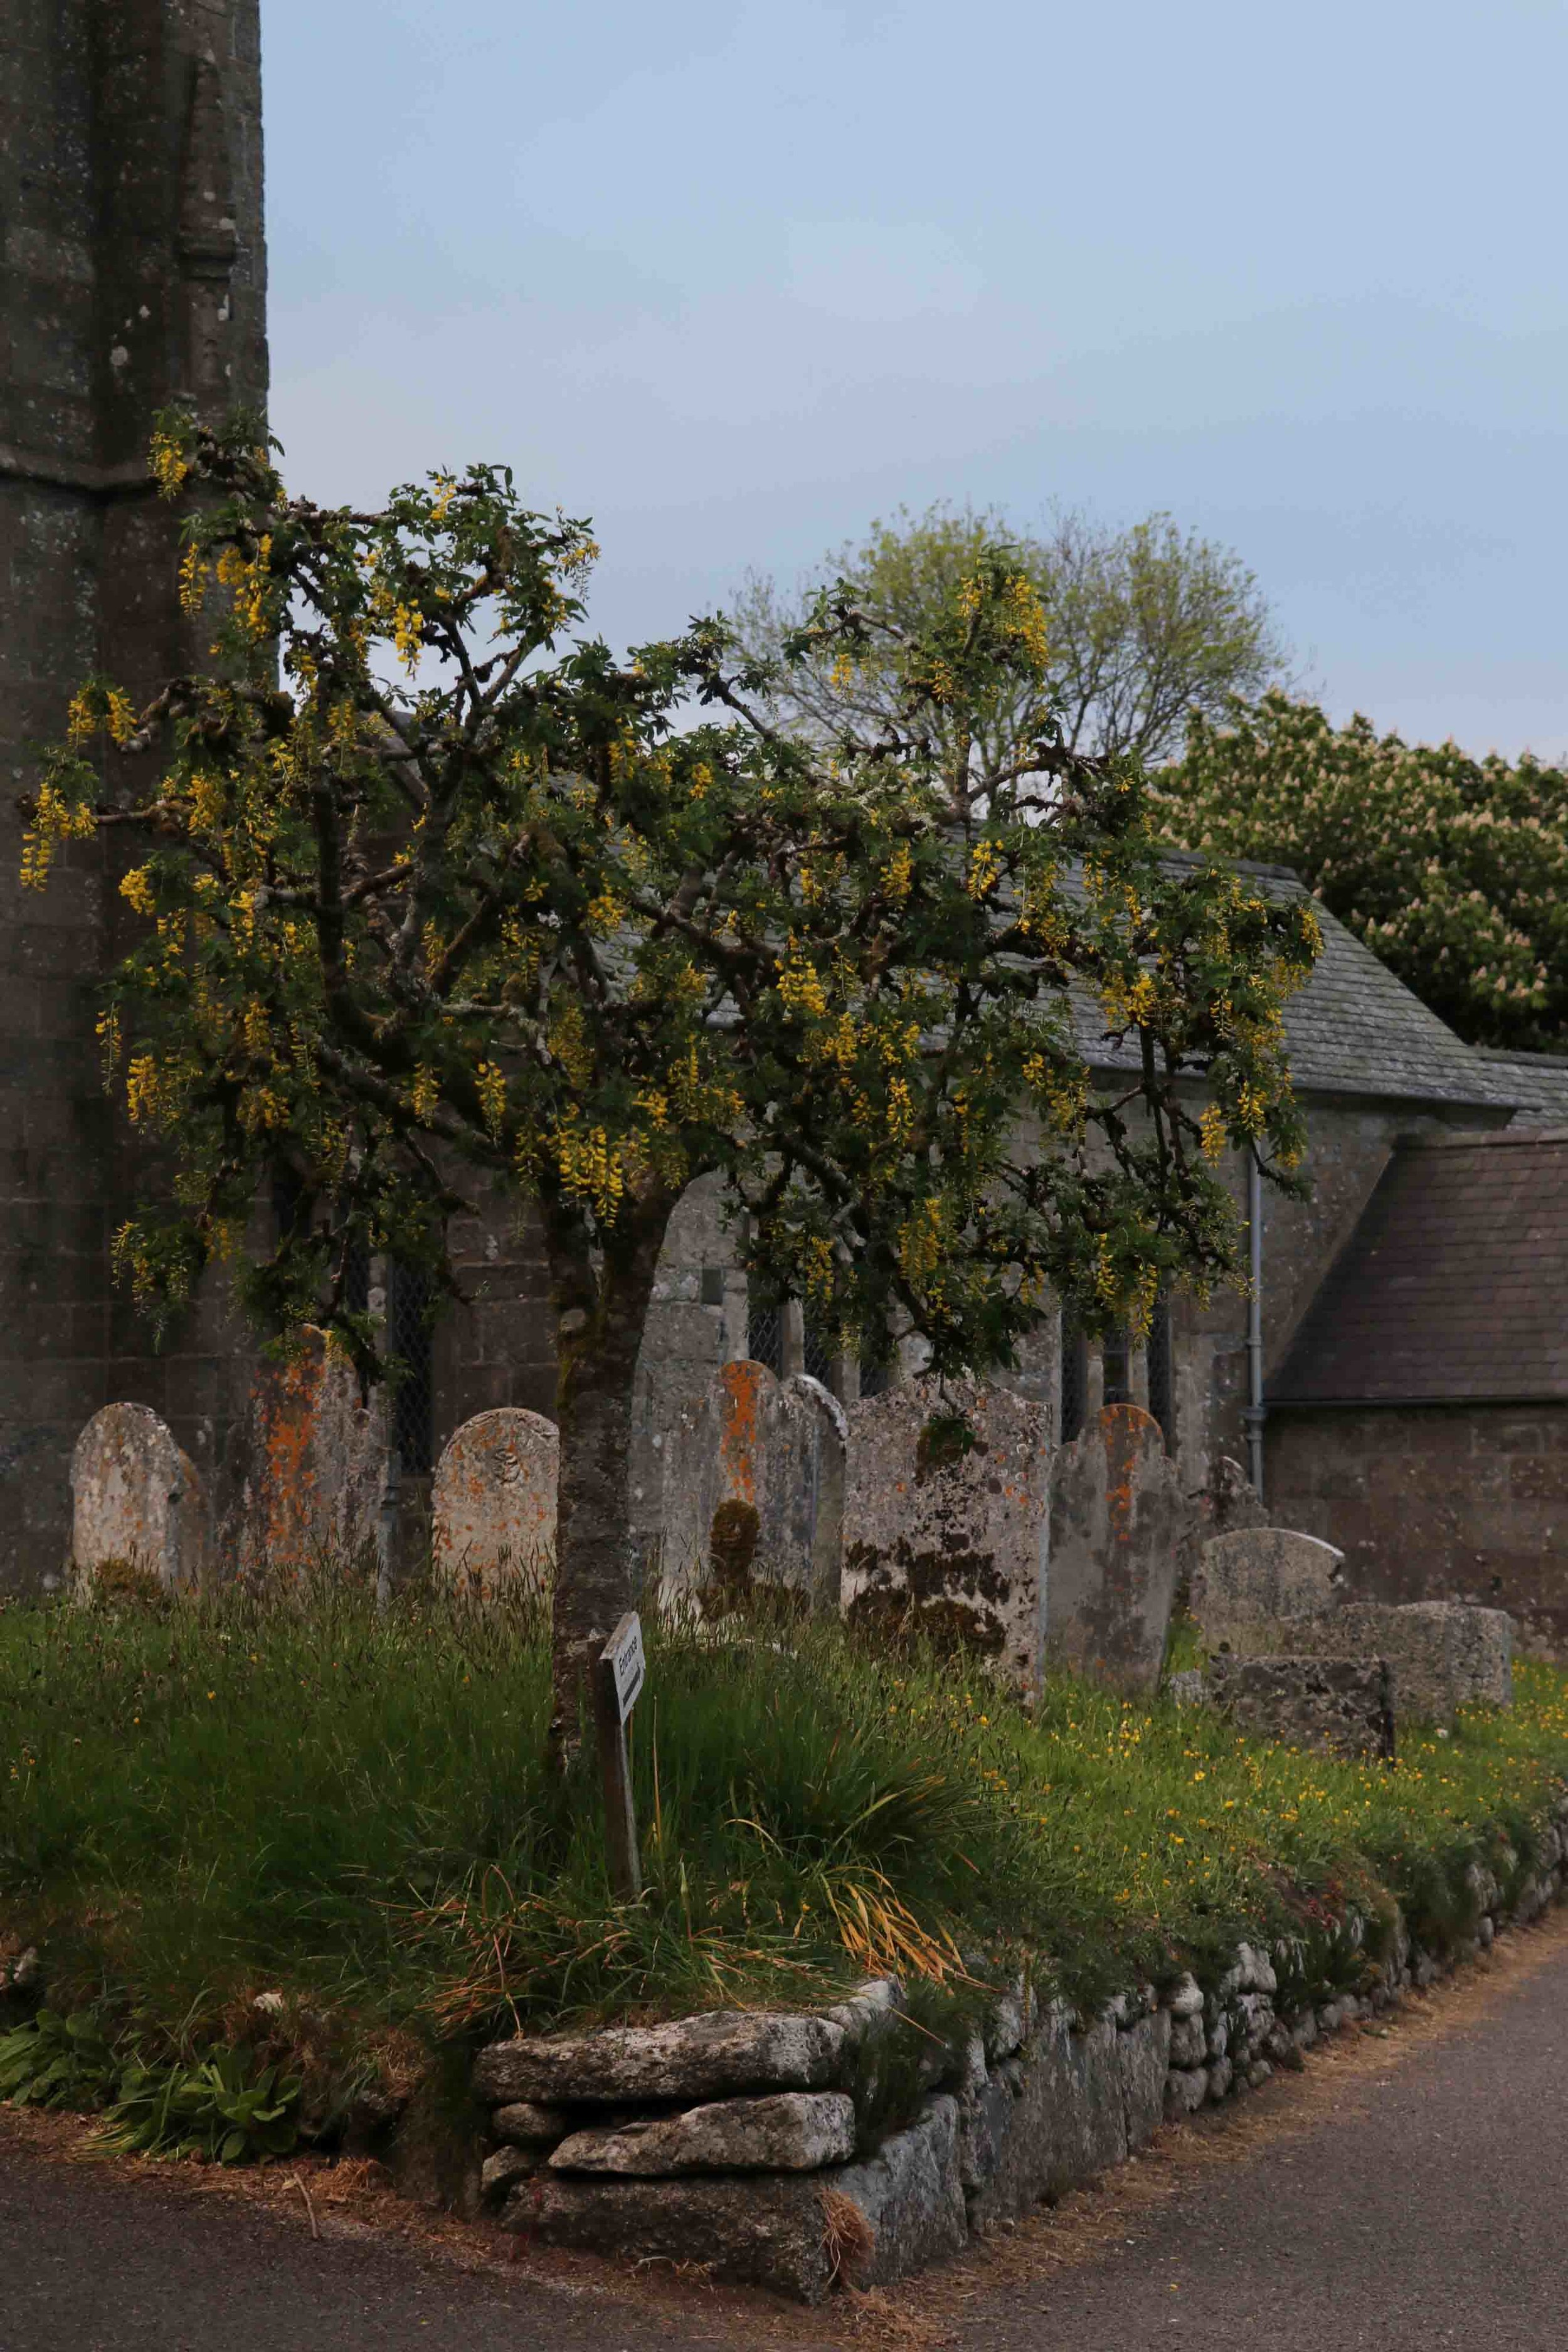 Yellow Wisteria at Widecombe-in-the-moor, Devon.